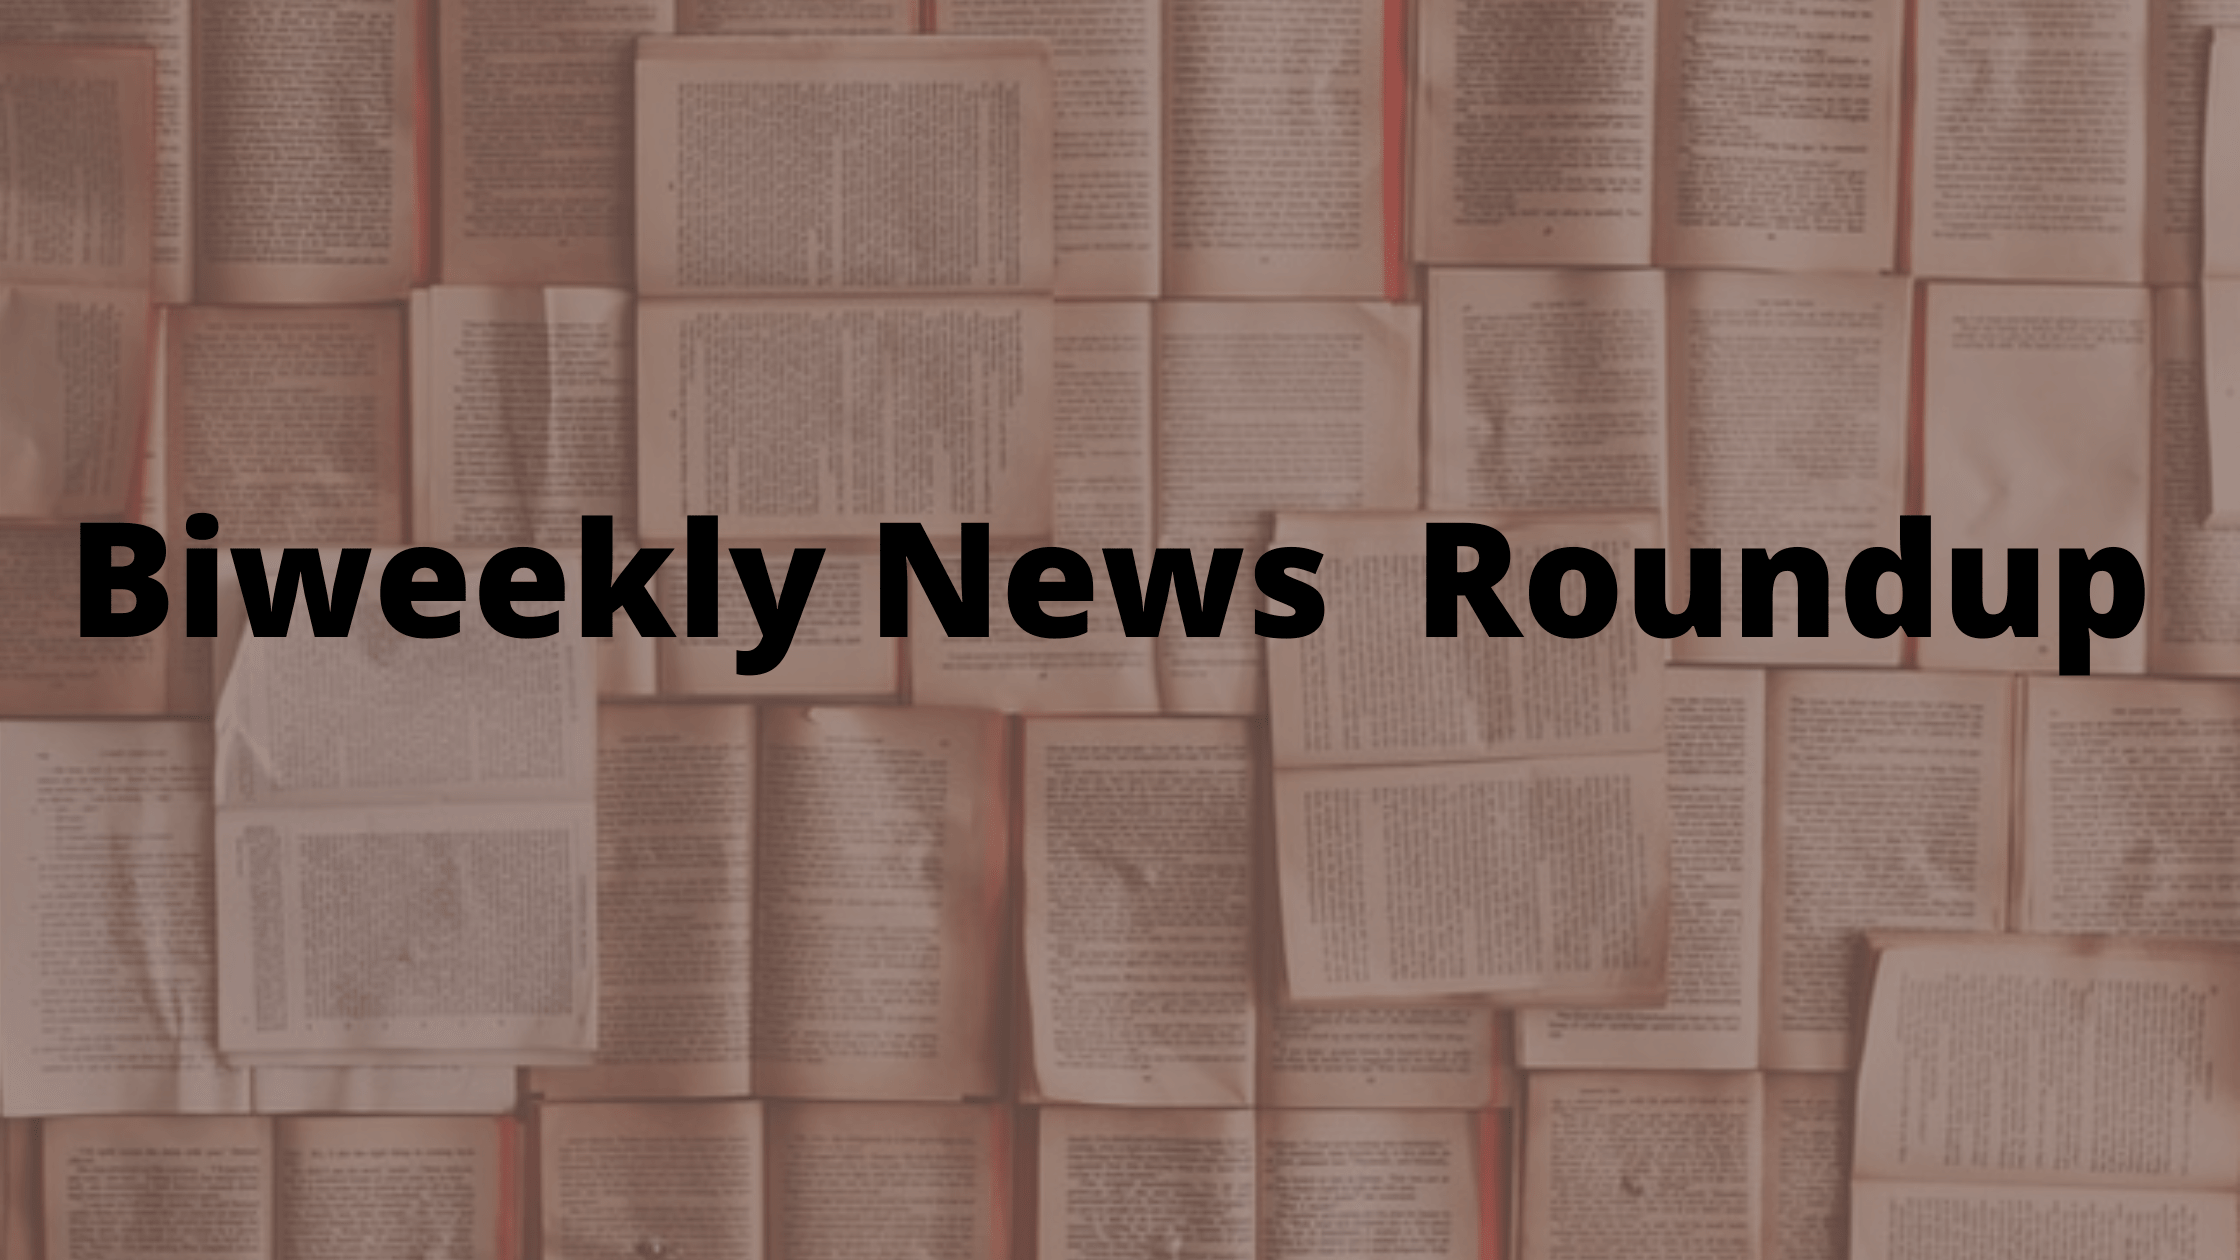 Biweekly News Roundup – Latest SEO & SM News From around the Web